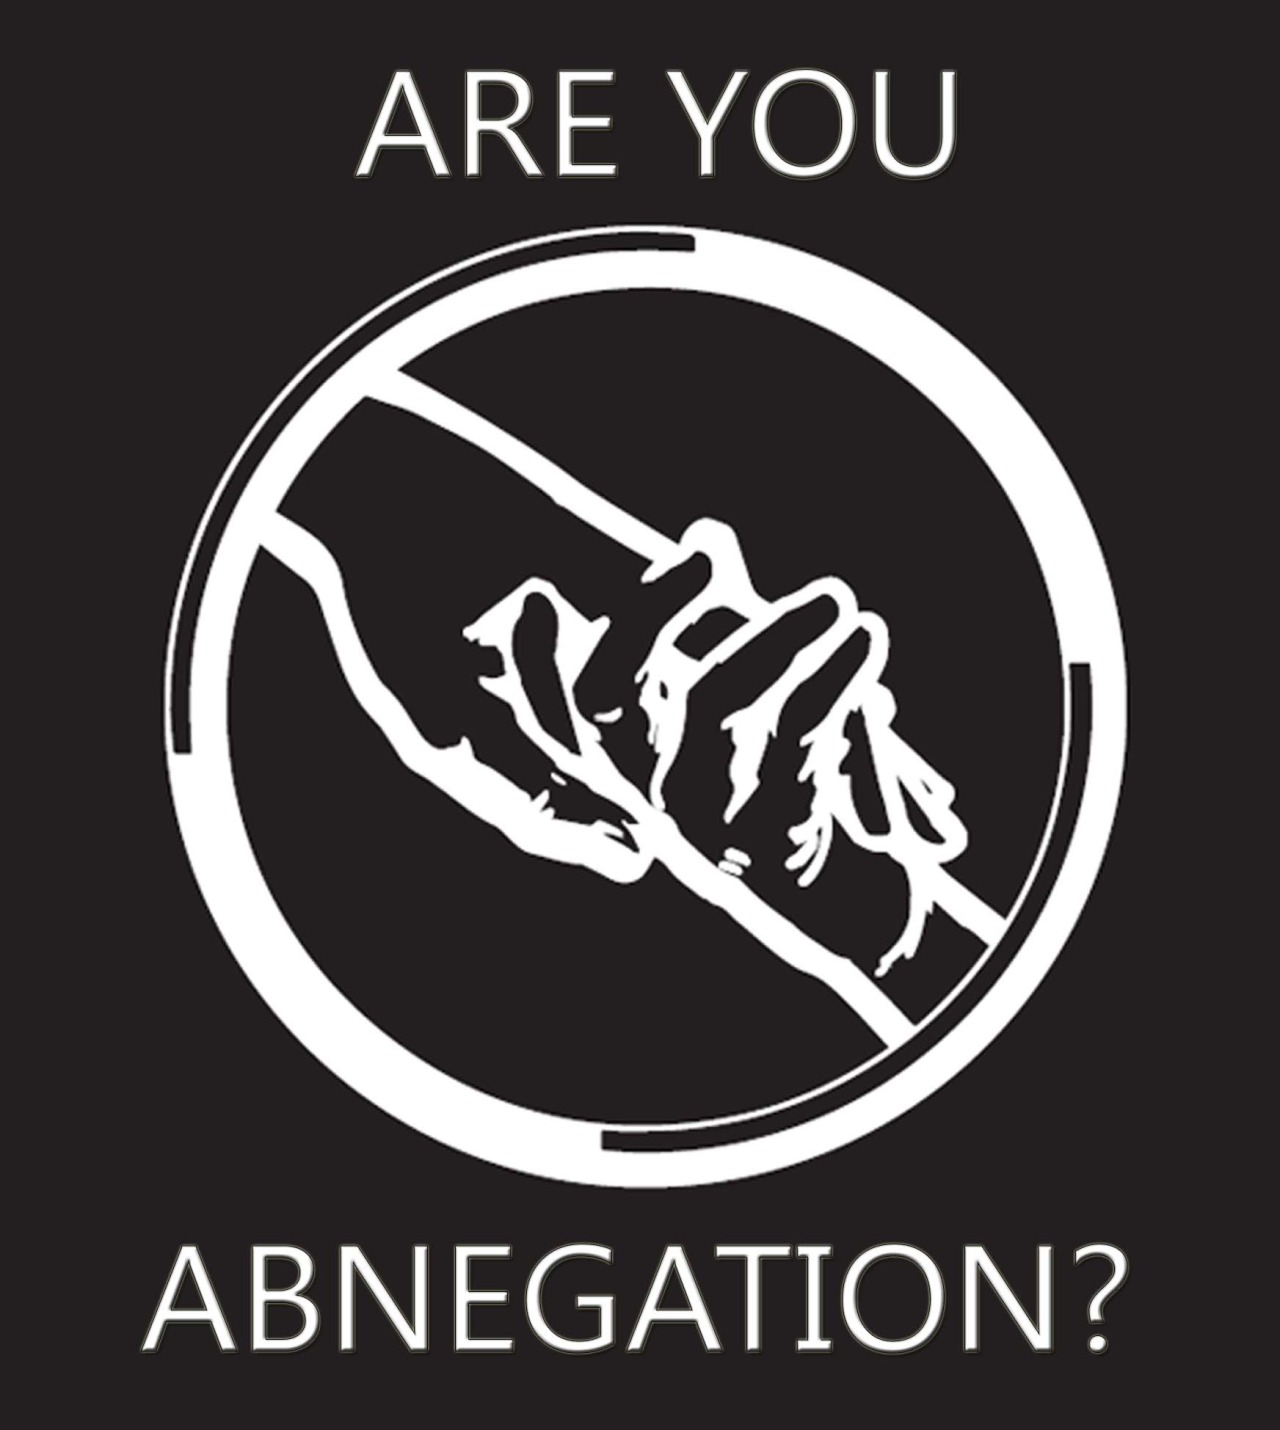 Are you Abnegation?